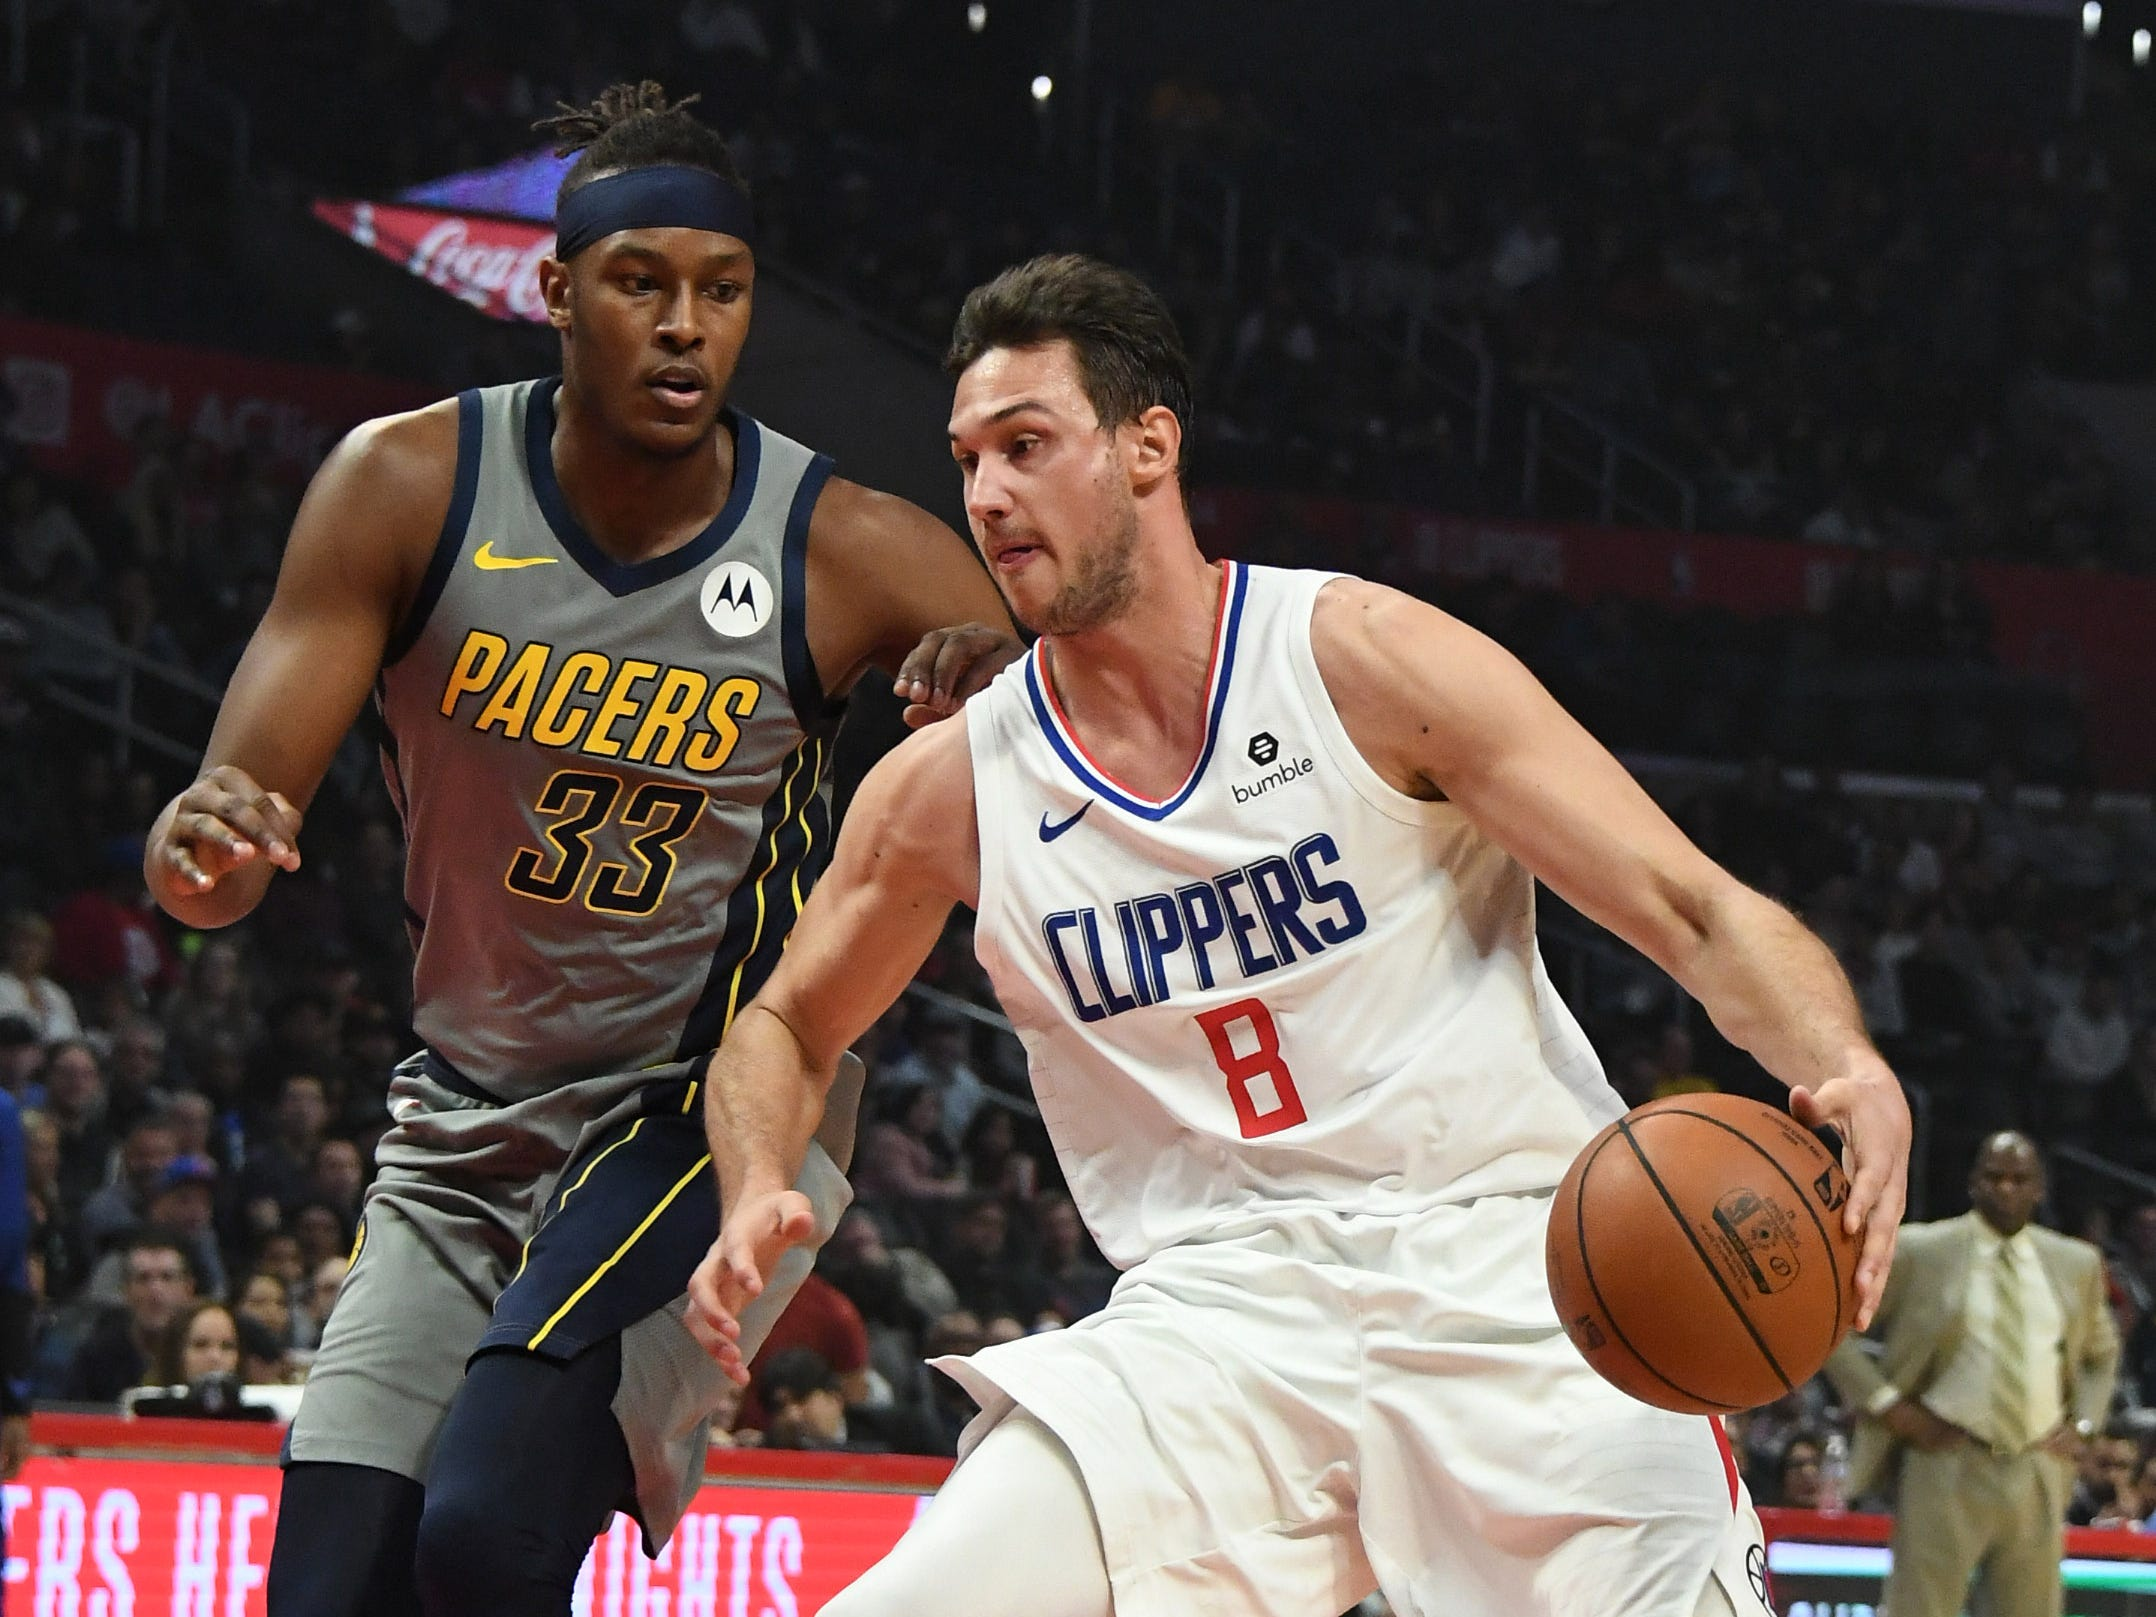 Mar 19, 2019; Los Angeles, CA, USA; LA Clippers forward Danilo Gallinari (8) drives to the basket against Indiana Pacers center Myles Turner (33) in the first half at the Staples Center.